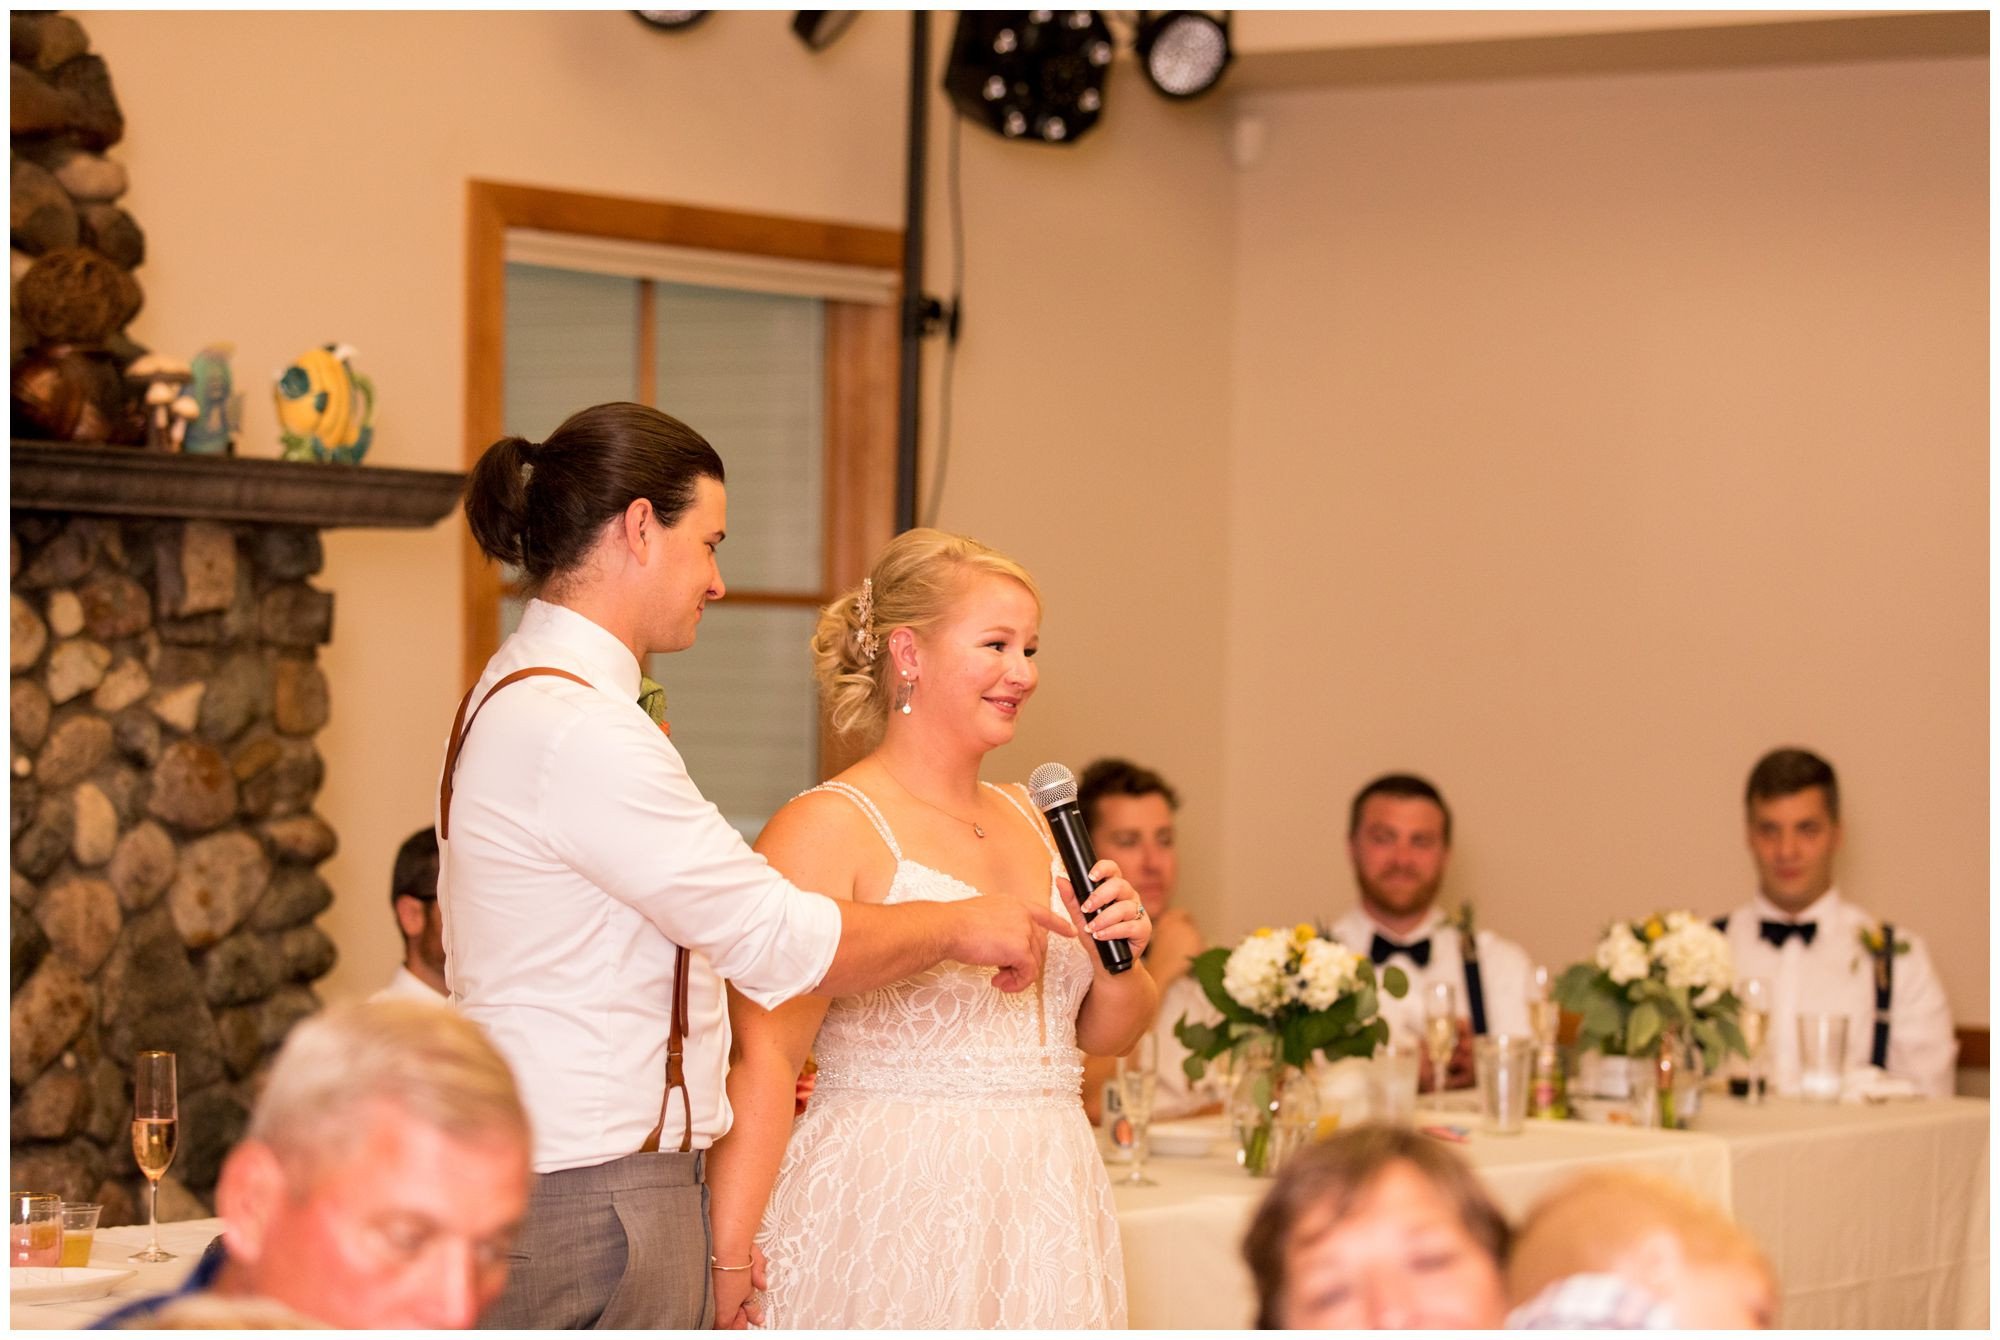 bride and groom thank guests for attending during wedding reception